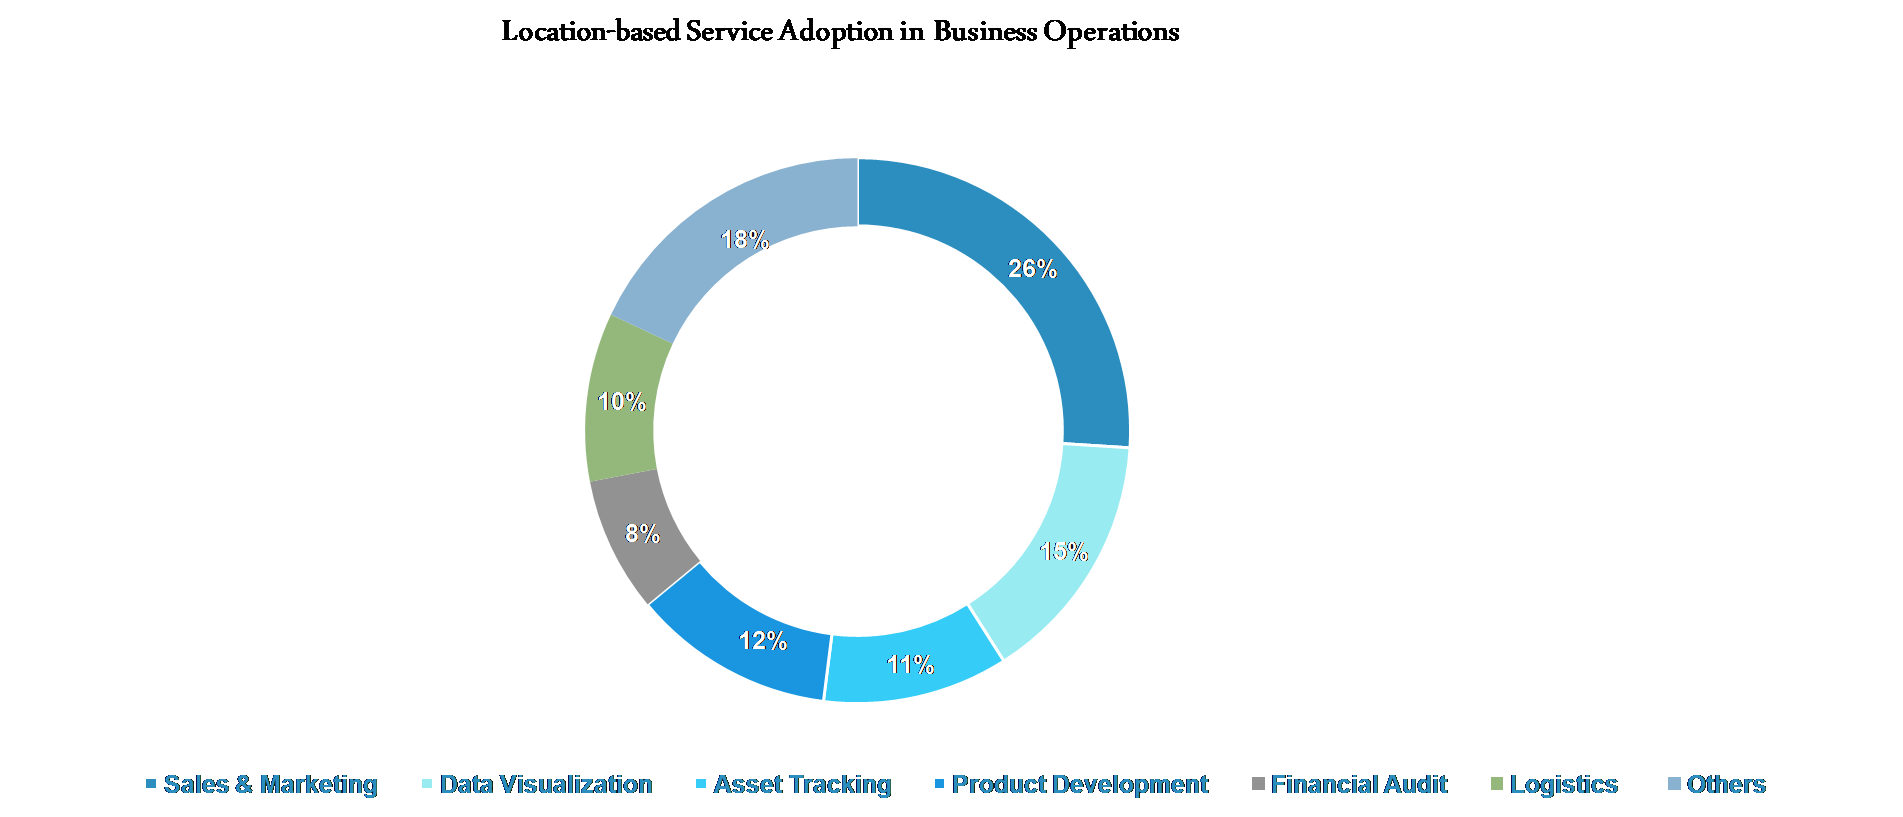 growth expected in global security analytics These factors are expected to present excellent growth opportunities for the global security analytics market over the report's forecast period global security analytics market: key trends and opportunities.